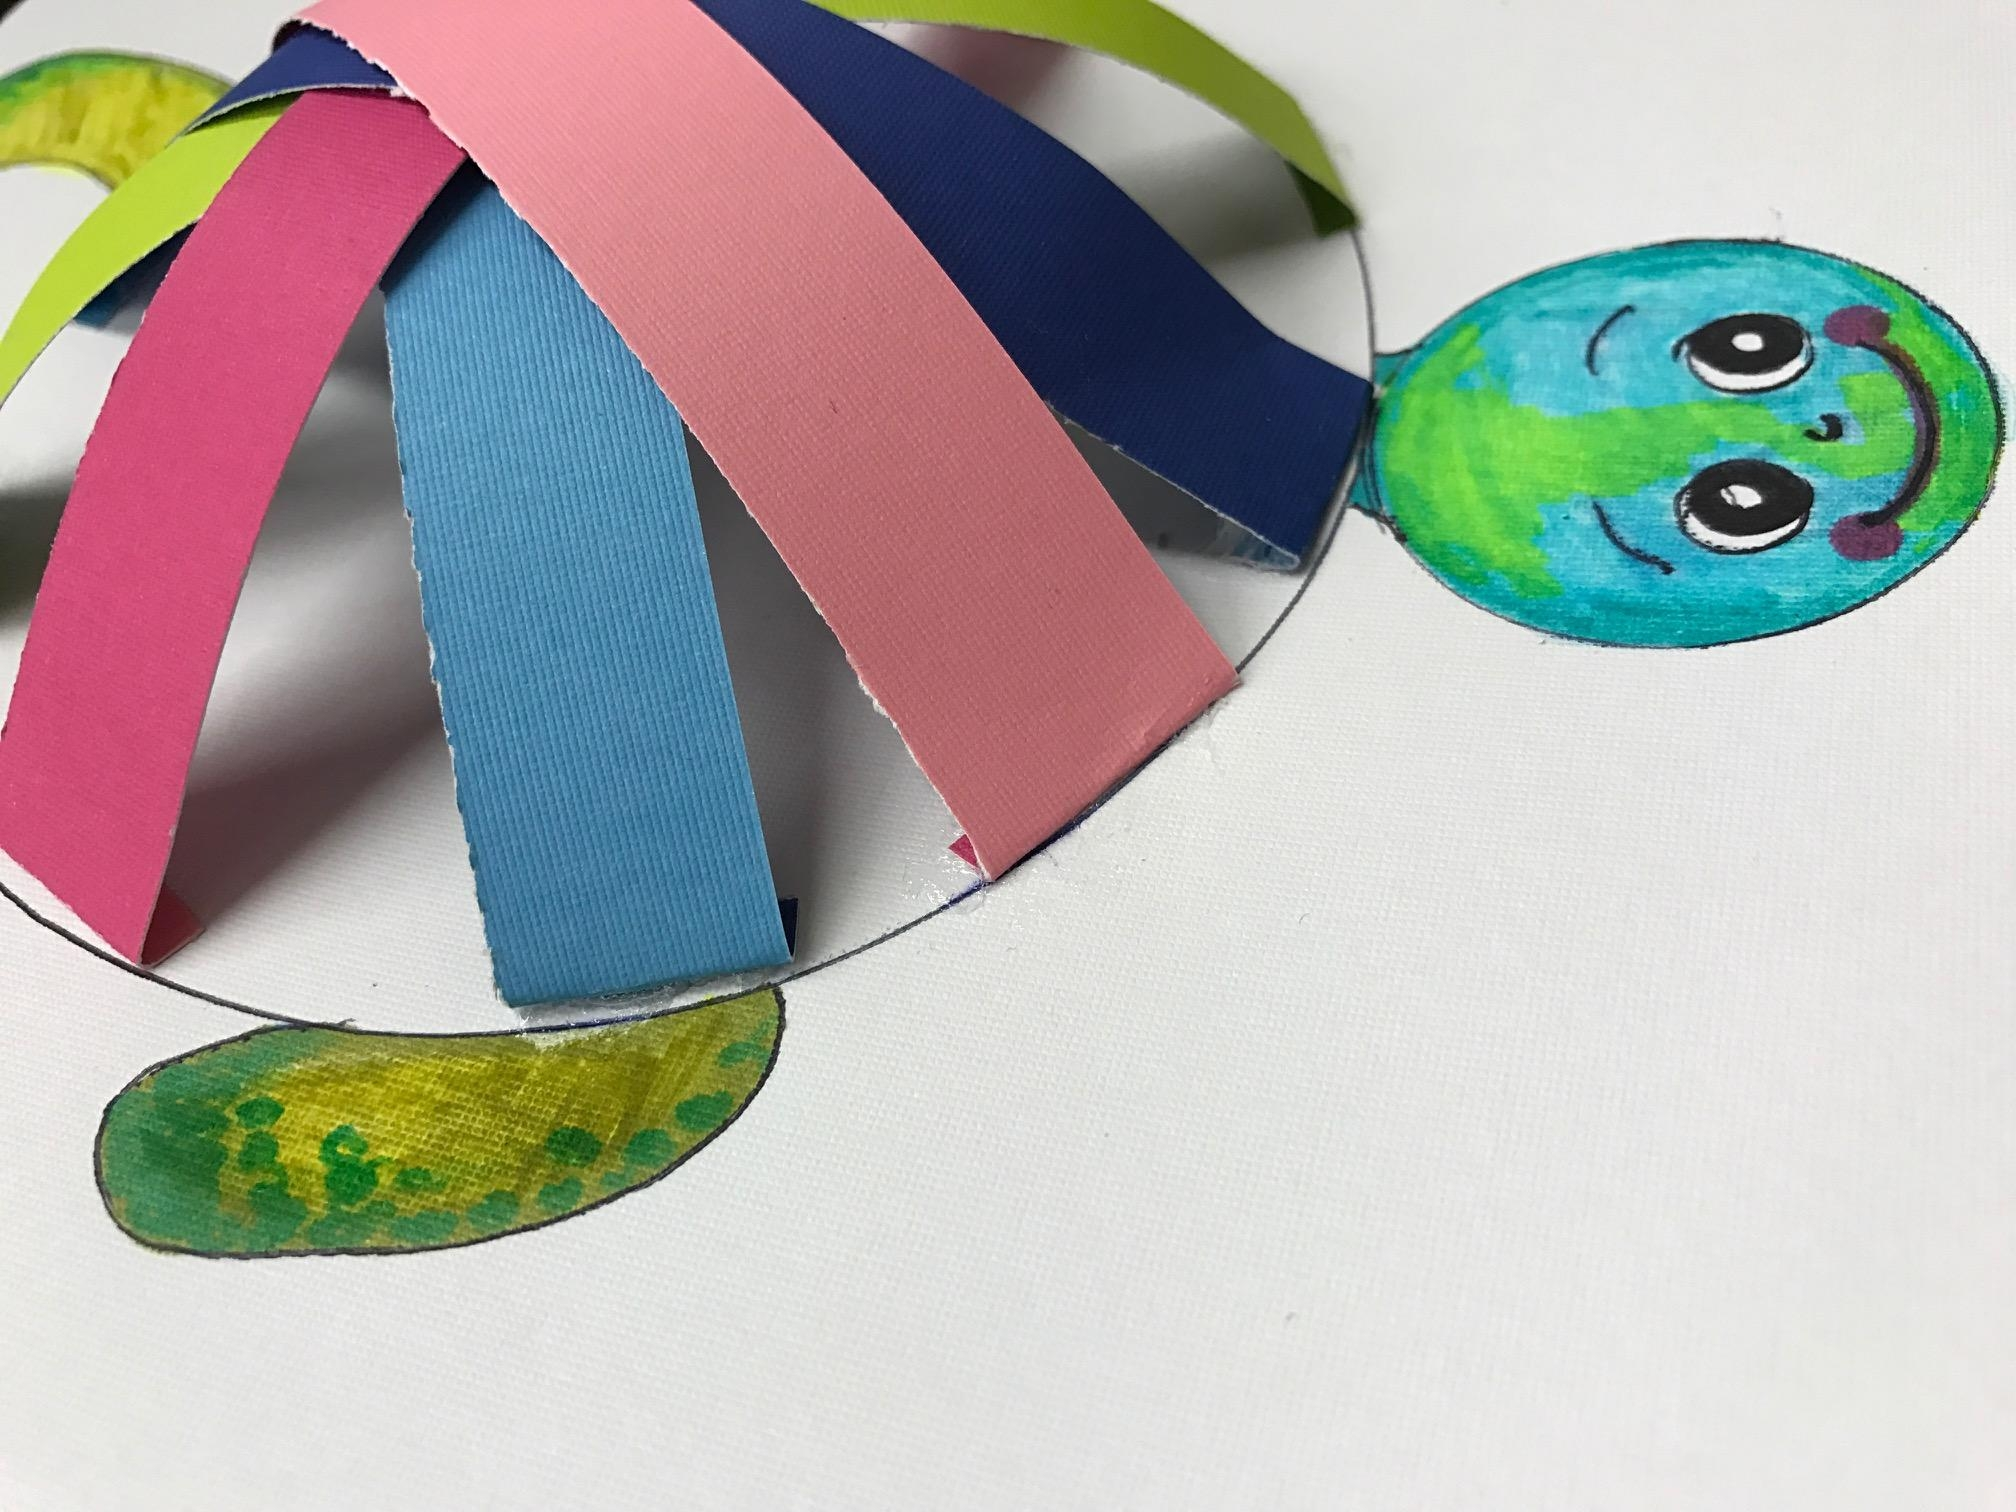 Turtle Wall Art | The Kids Crafts Blog Intended For Flip Flop Wall Art (Image 18 of 20)